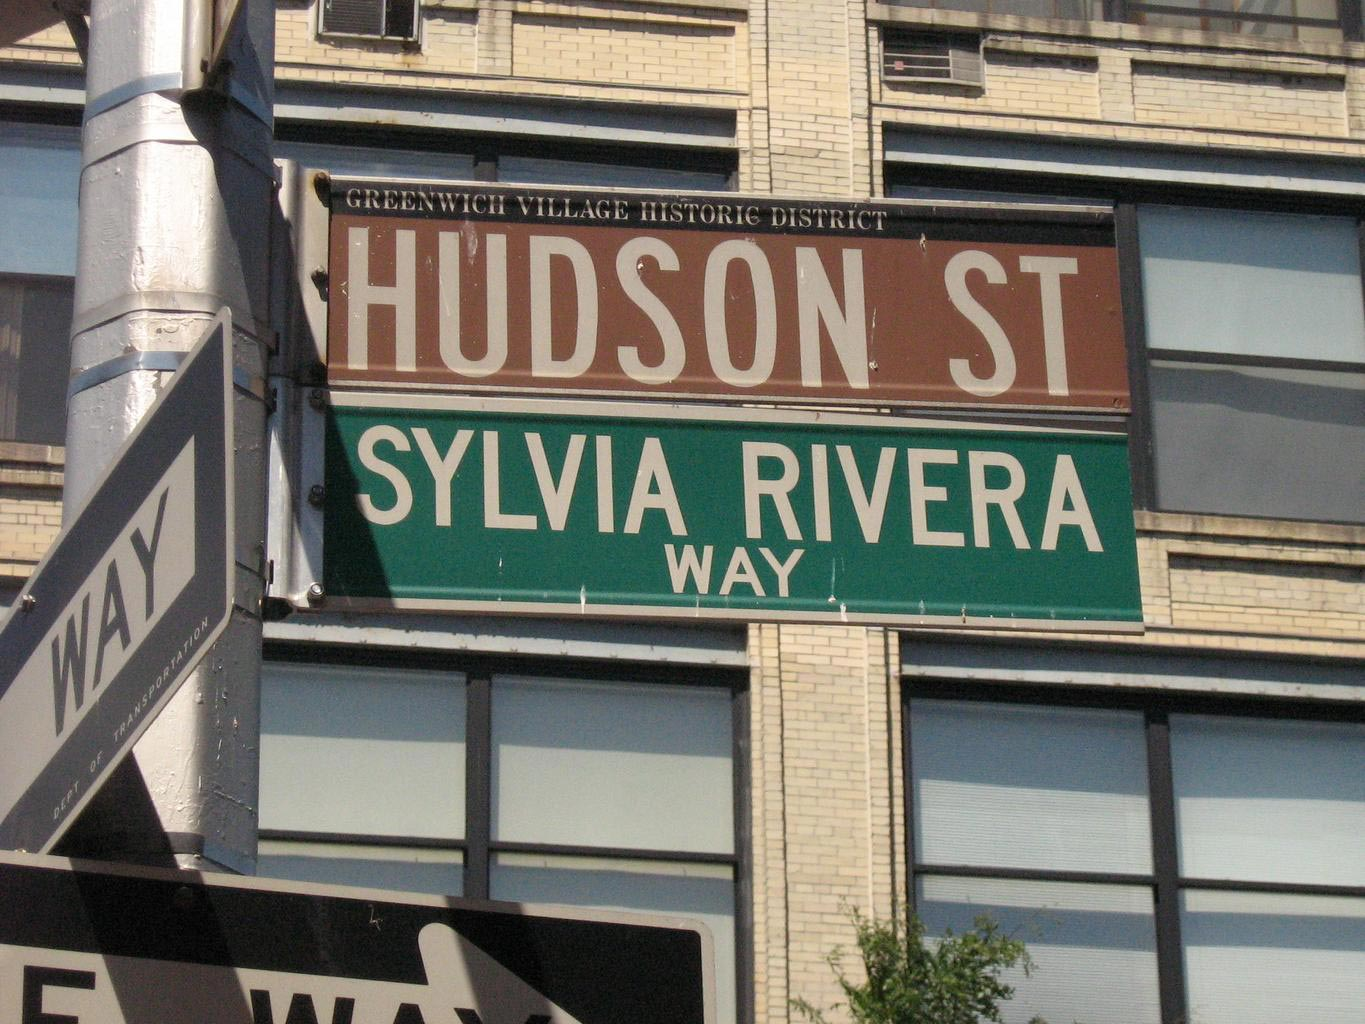 The intersection of Hudson Street and Sylvia Rivera Way